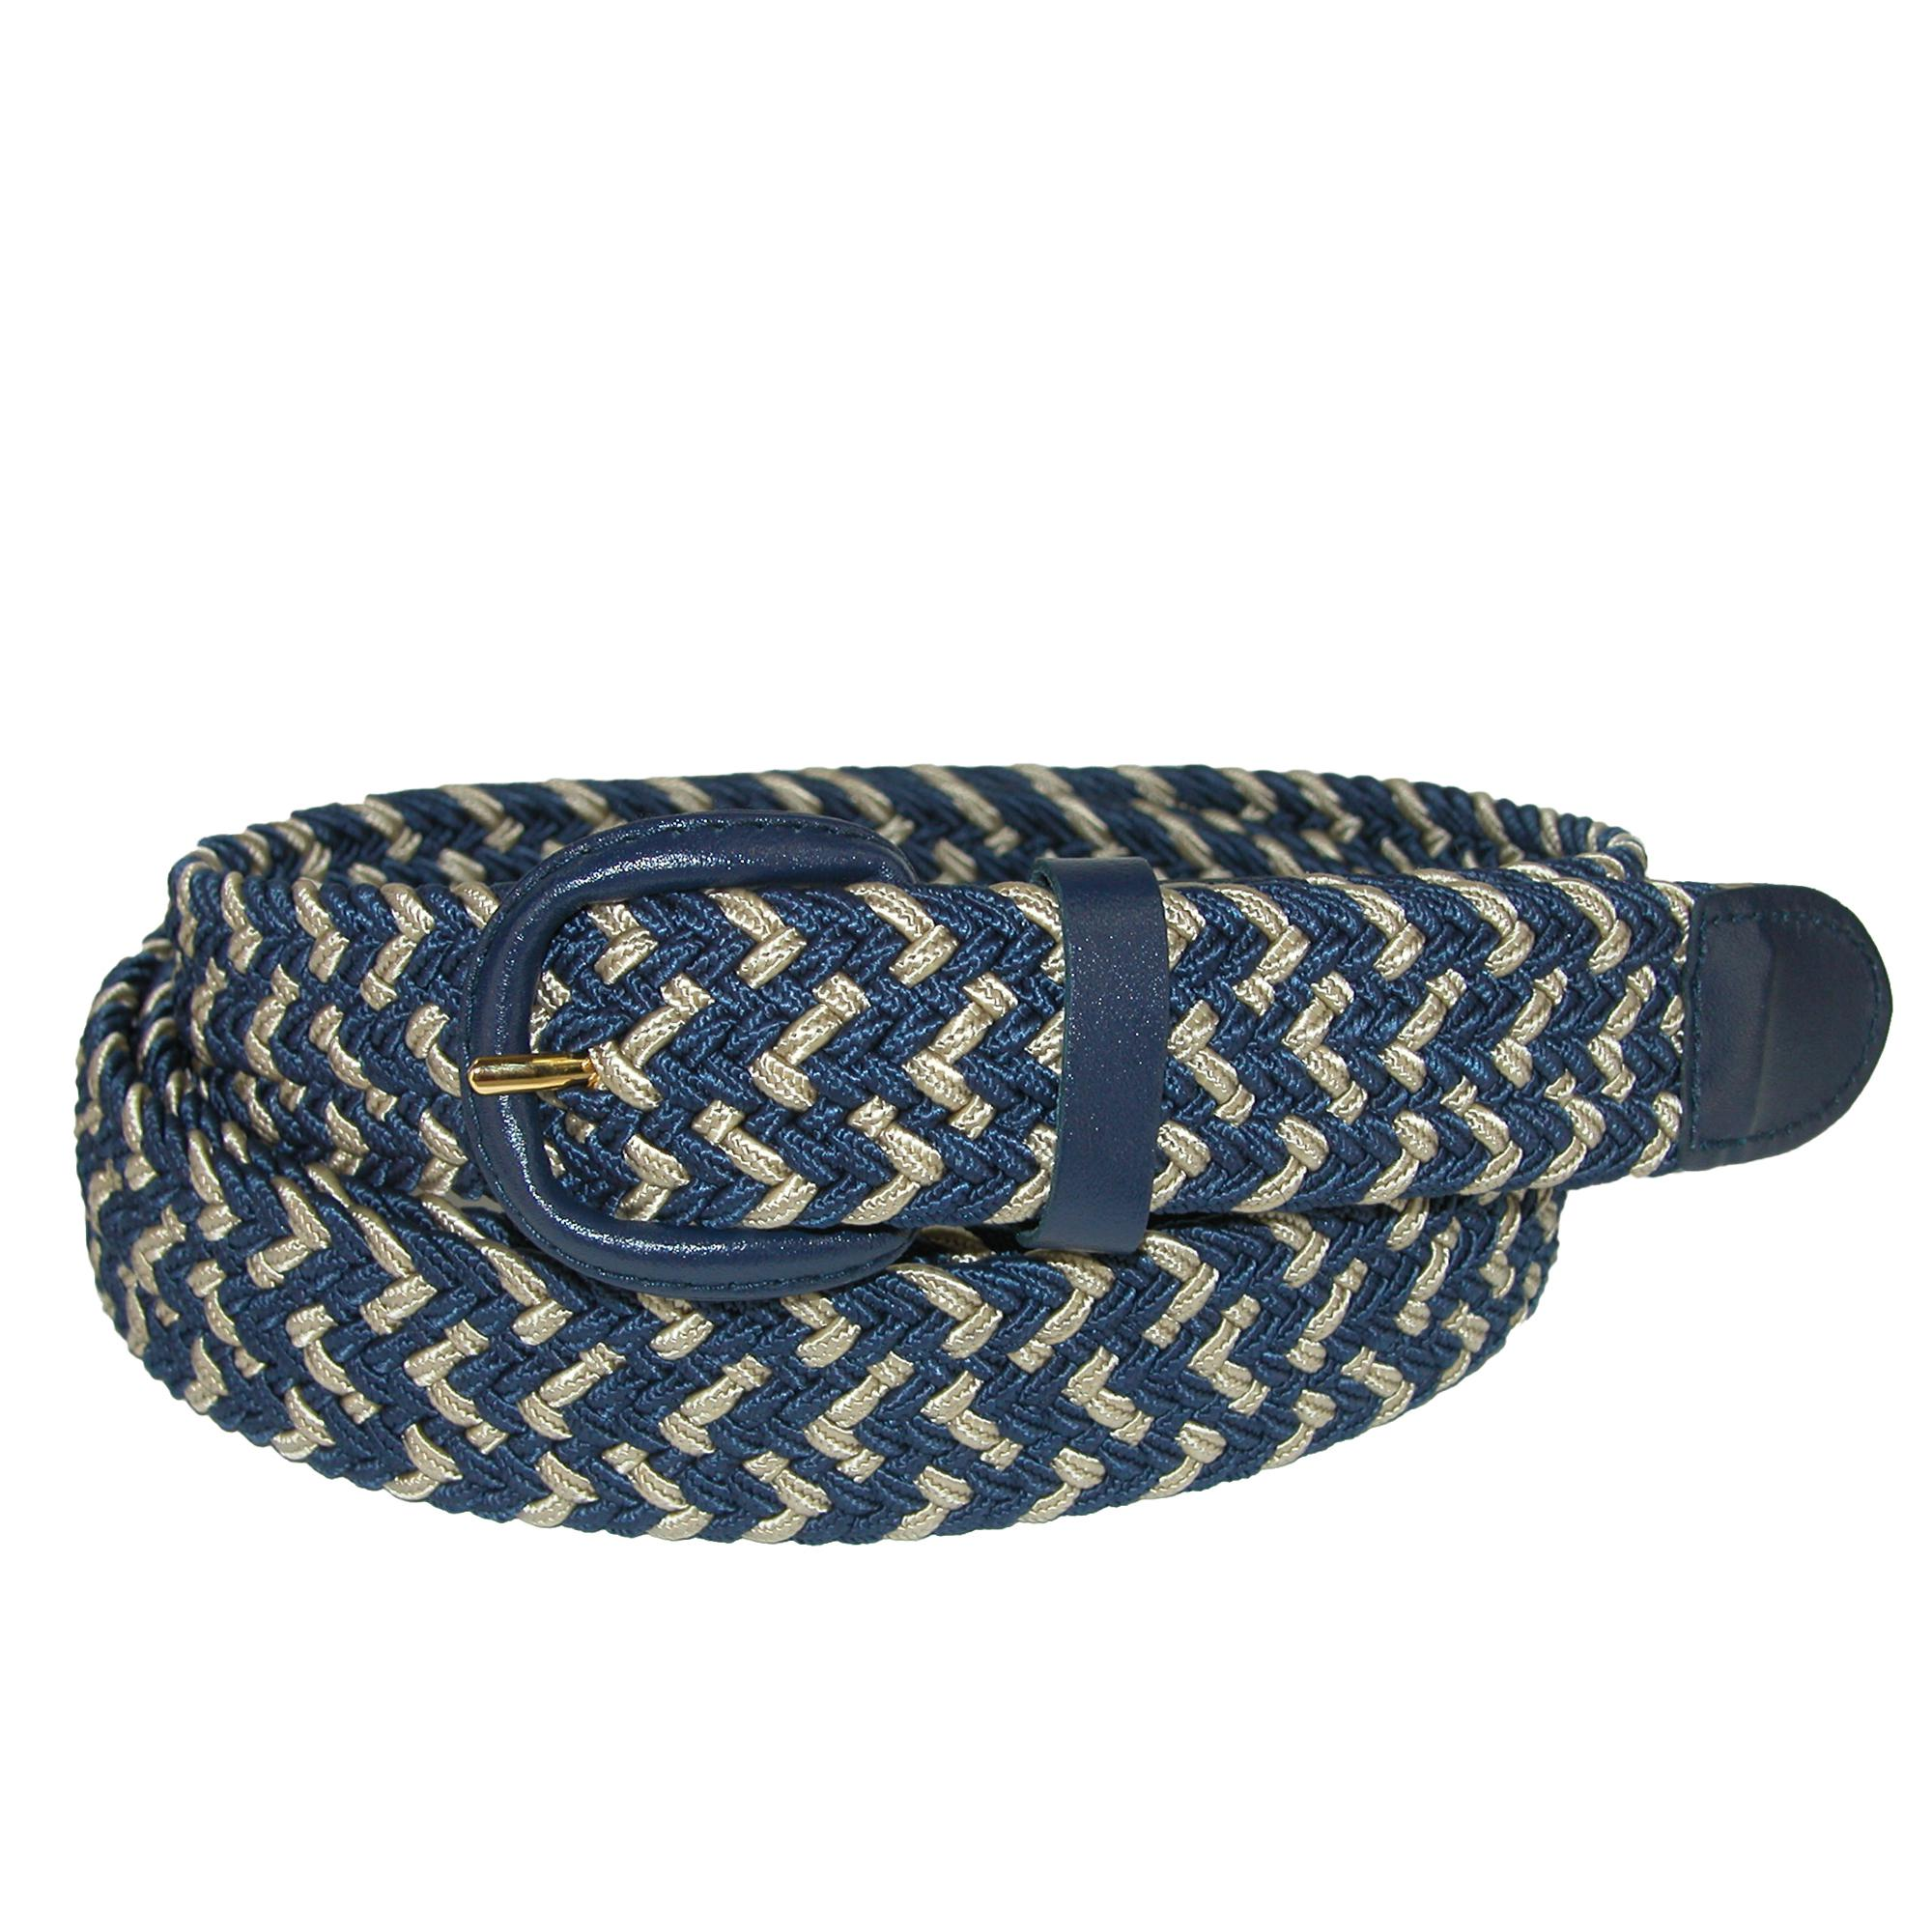 CTM_Men's_Elastic_Stretch_Two_Tone_Belt_with_Matching_Buckle_-_Navy